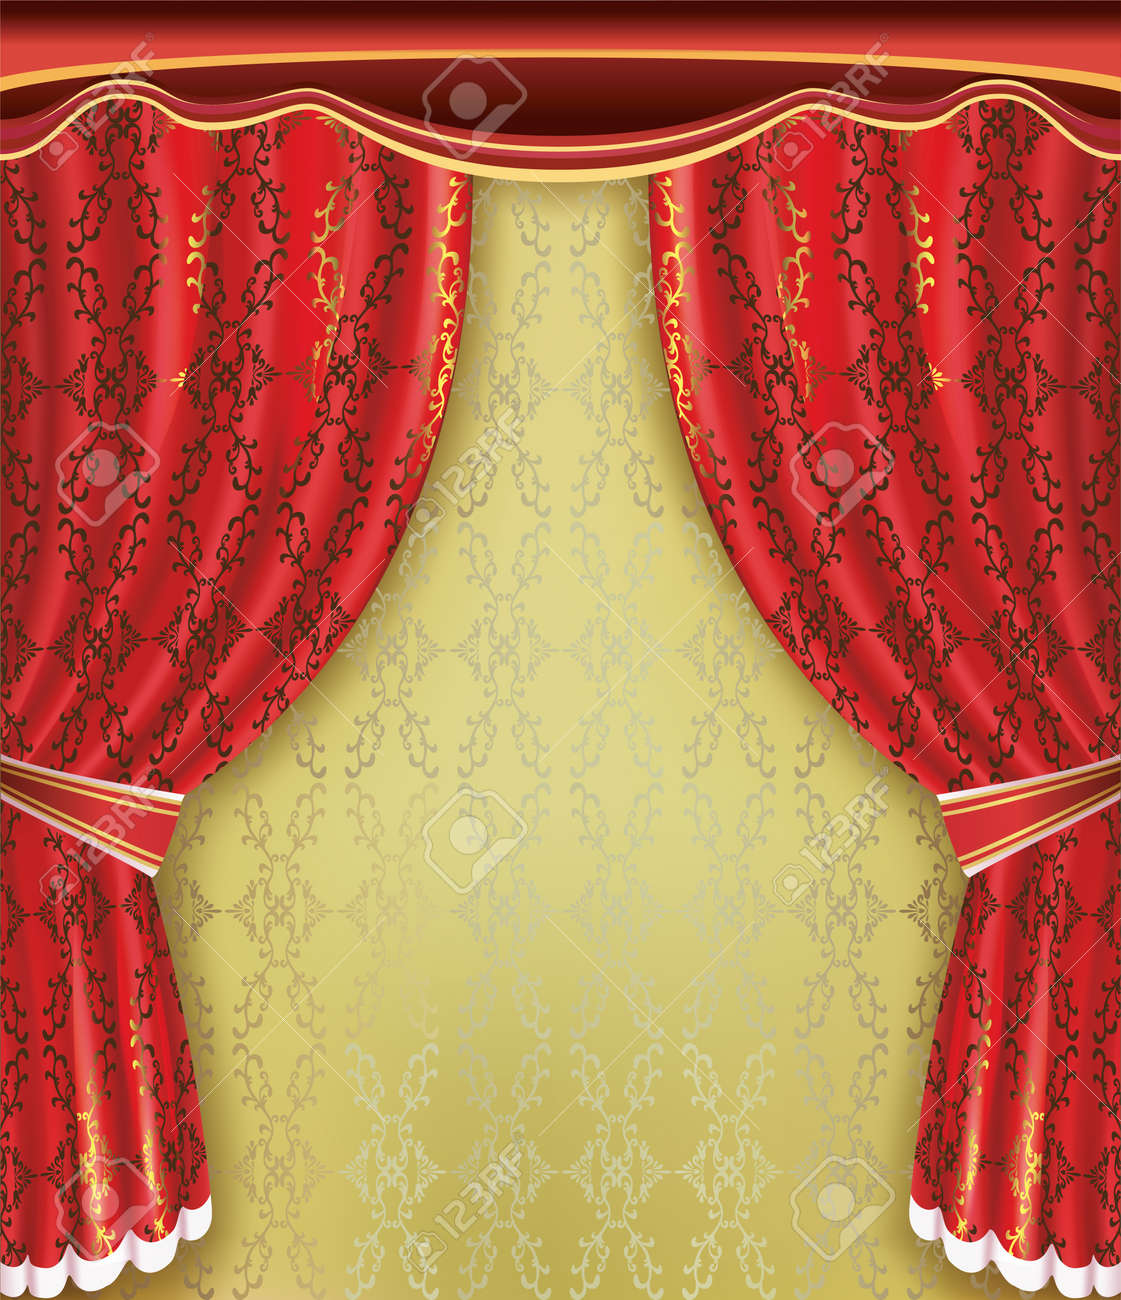 Luxury background  Red curtain with golden pattern and ornament  Place for text Stock Vector - 14891865